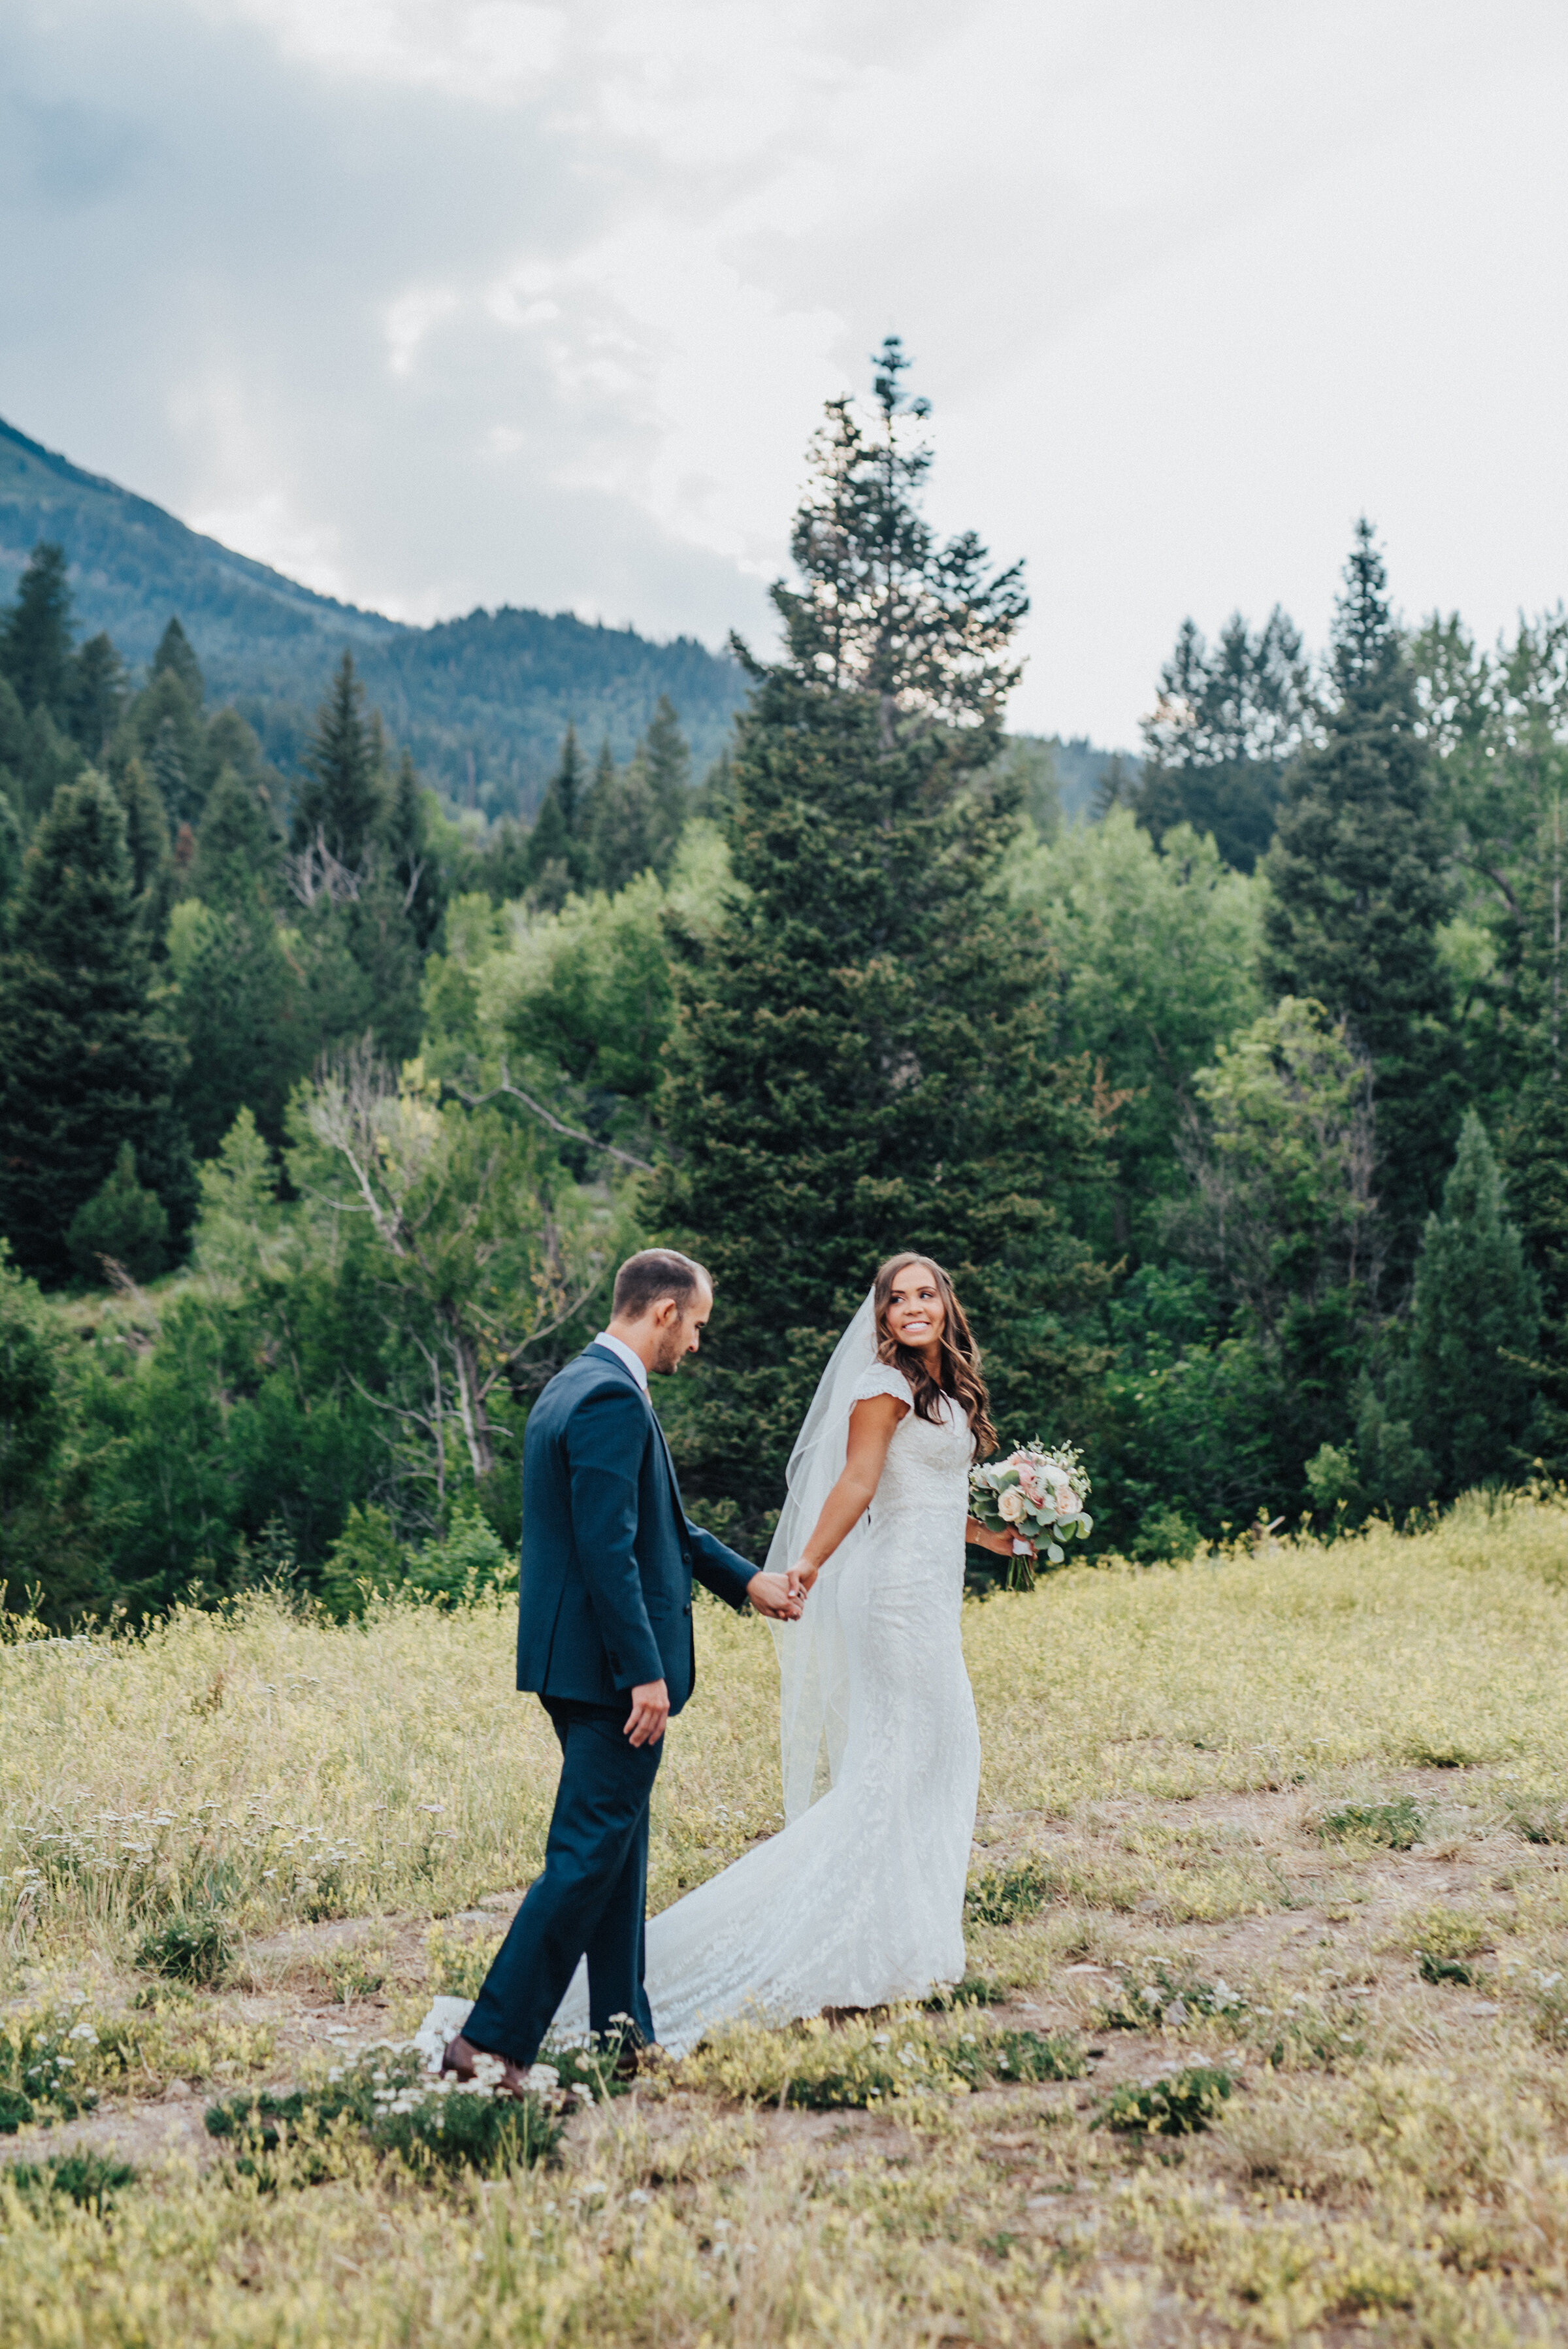 A smiling bride leads her husband by the hand as she strolls across an open grassy area in American Fork Canyon. Light pink bouquet and tie navy suit evergreen trees mountainside background grassy terrain American Fork Canyon Tibble Fork Reservoir holding hands full length veil #husbandandwife #younglove #tibbleforkreservoir #utahwedding #americanforkcanyon #coupleshoot #formals #weddingphotography #couplesgoals #couplephotography #weddingphotographer #couplesphotography #groom #bride